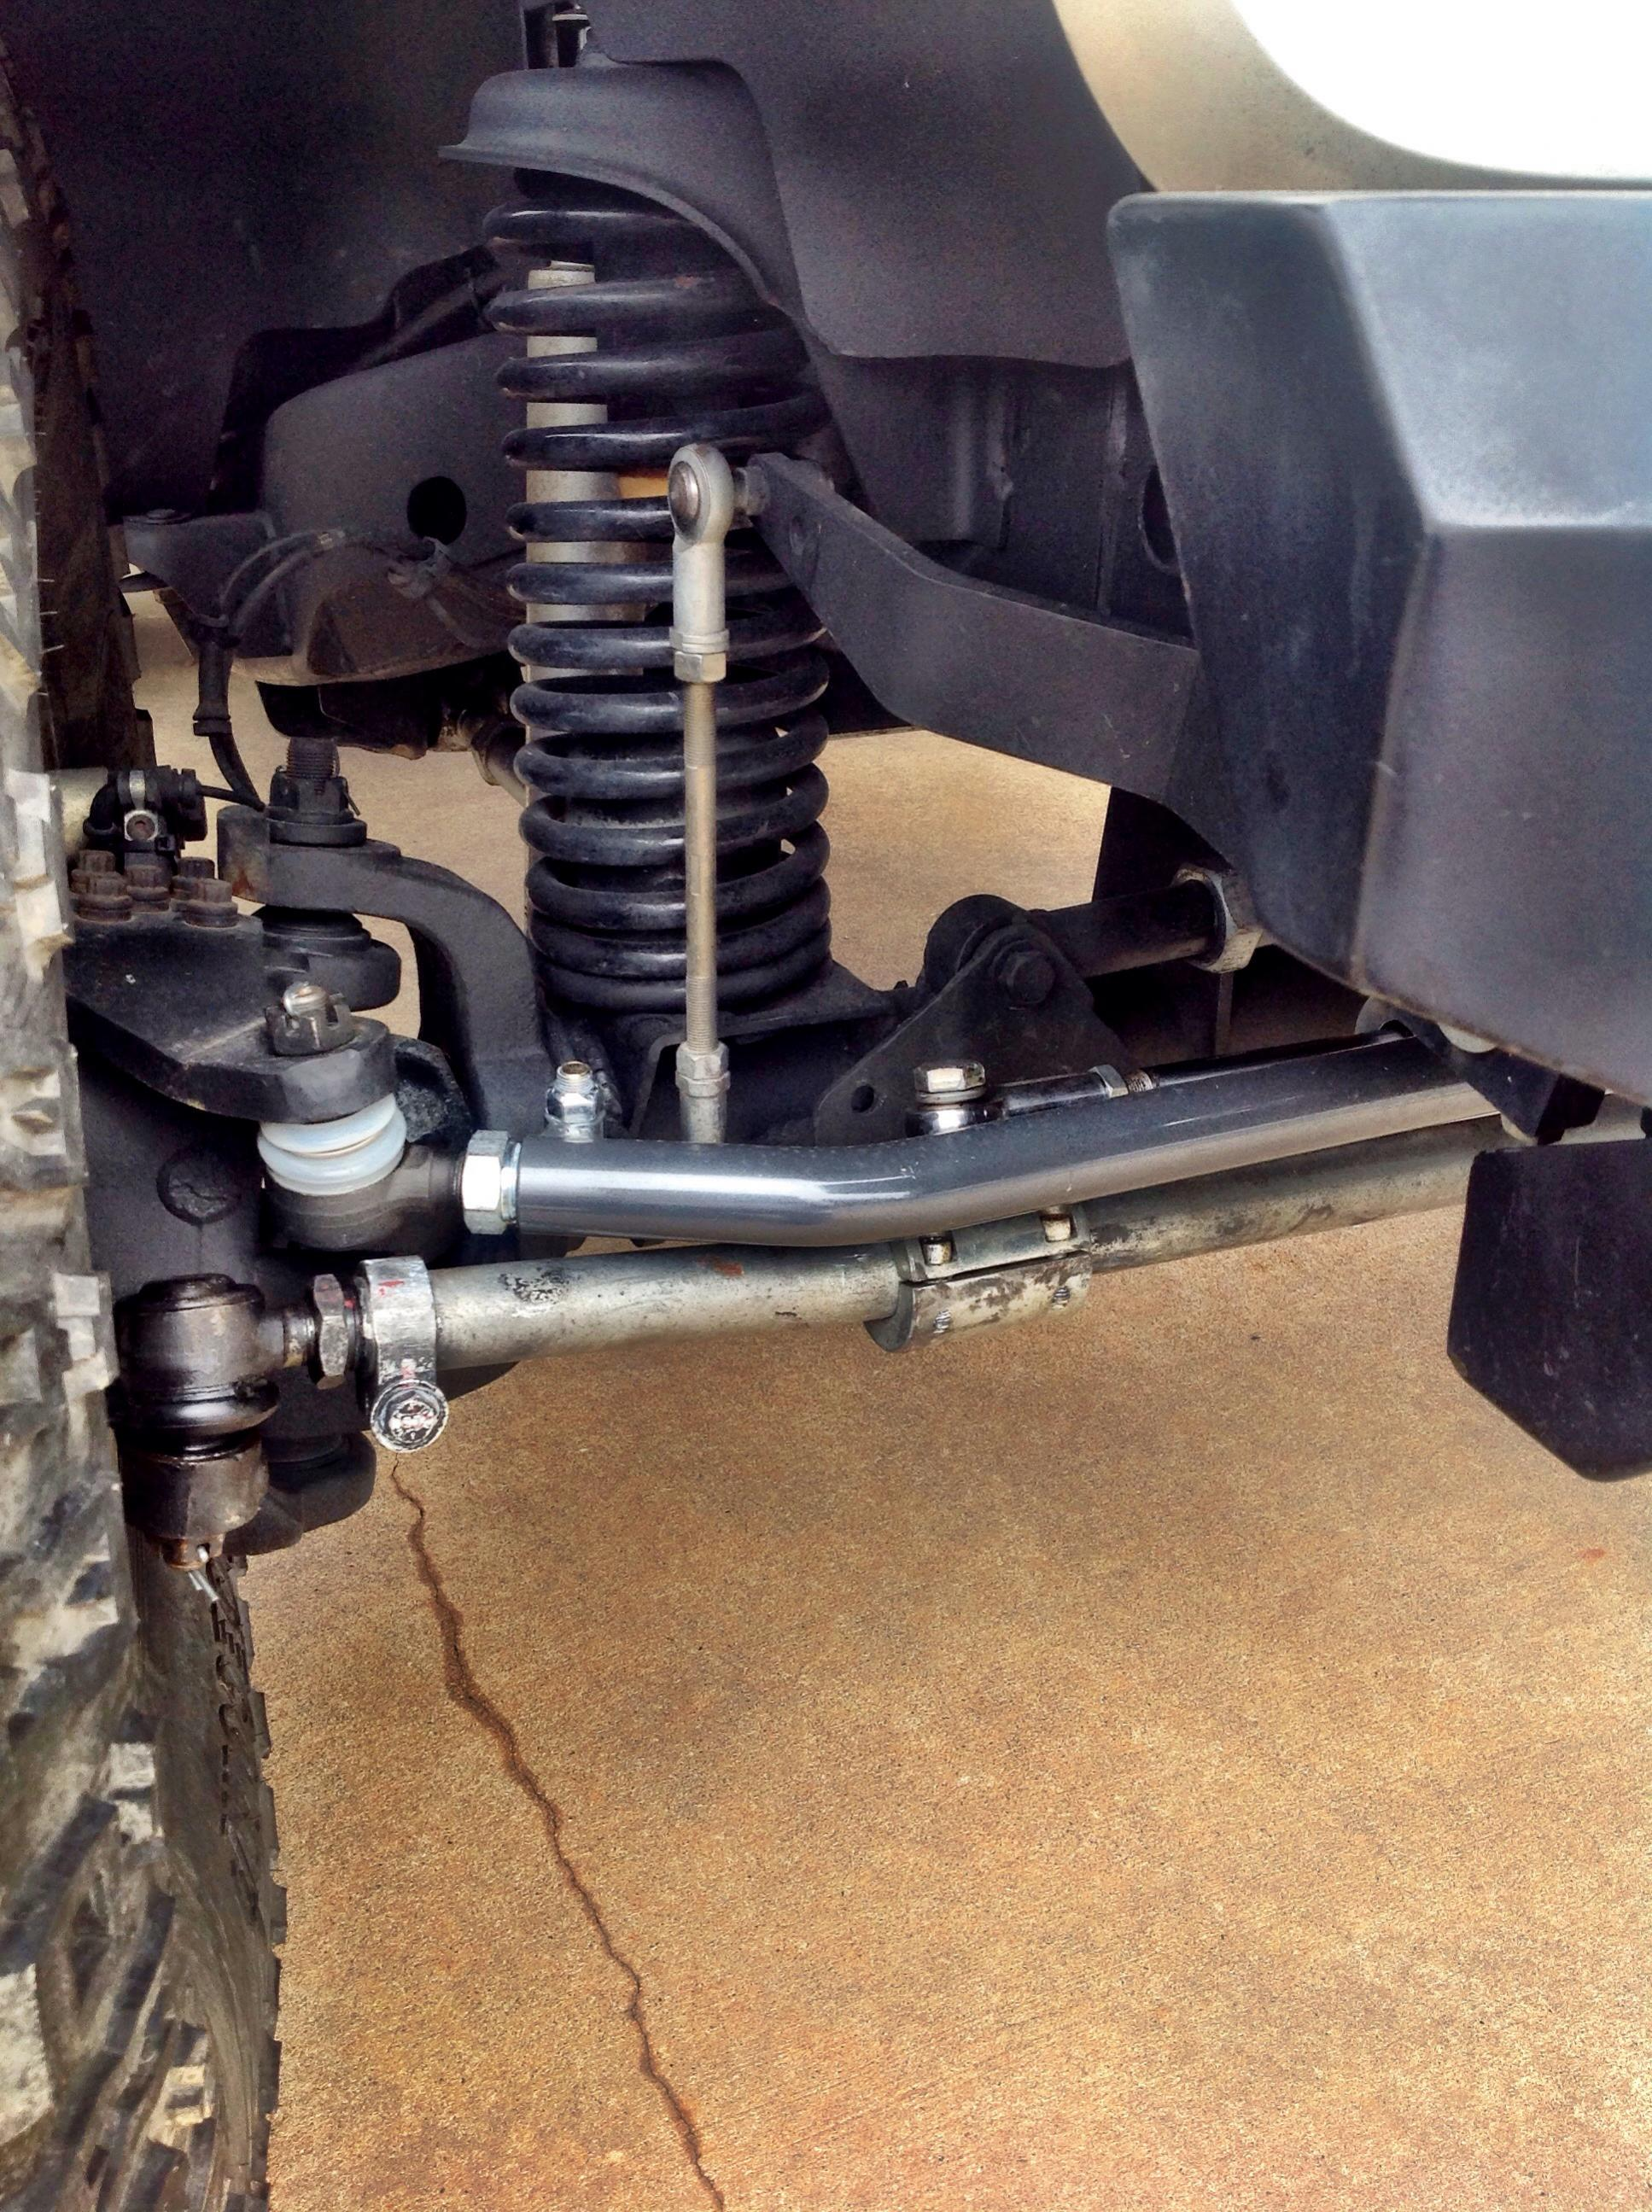 2009 Jeep Wrangler Drag Link Jk Interference With A Hydro Setup 1935x2591